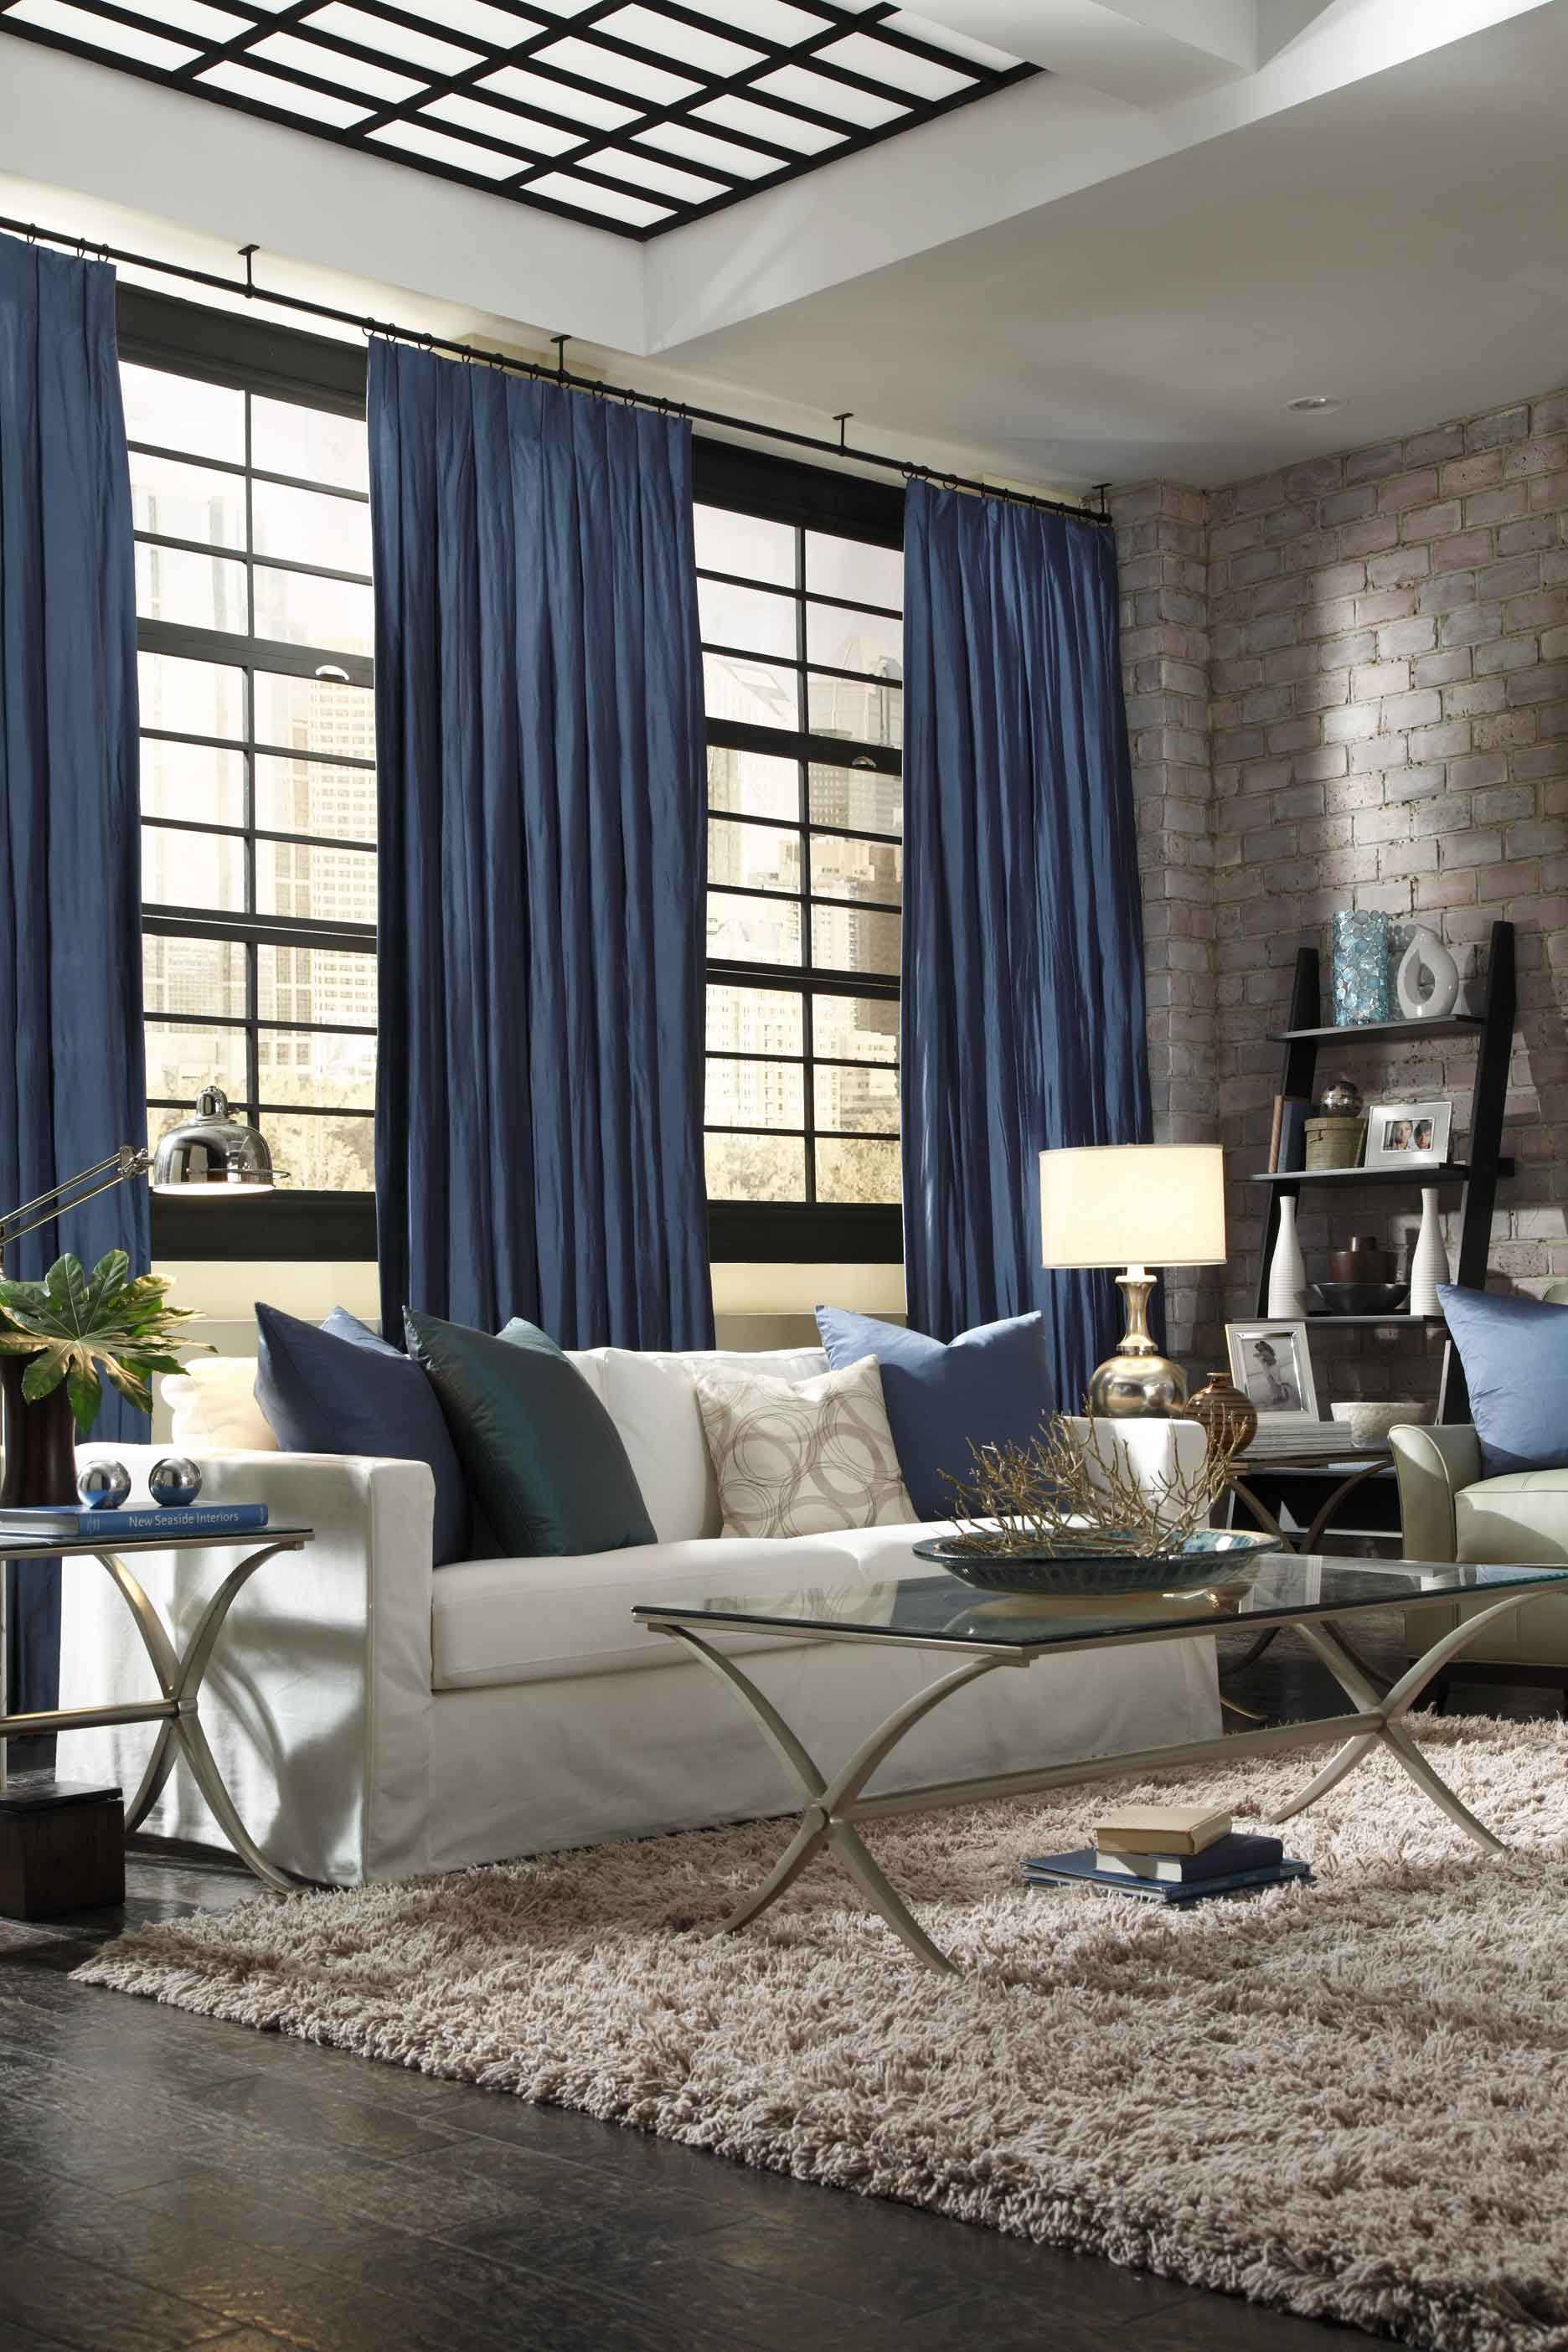 Stunning Home Decor With Blue Curtains Http Blog Eddiezs Com Tag